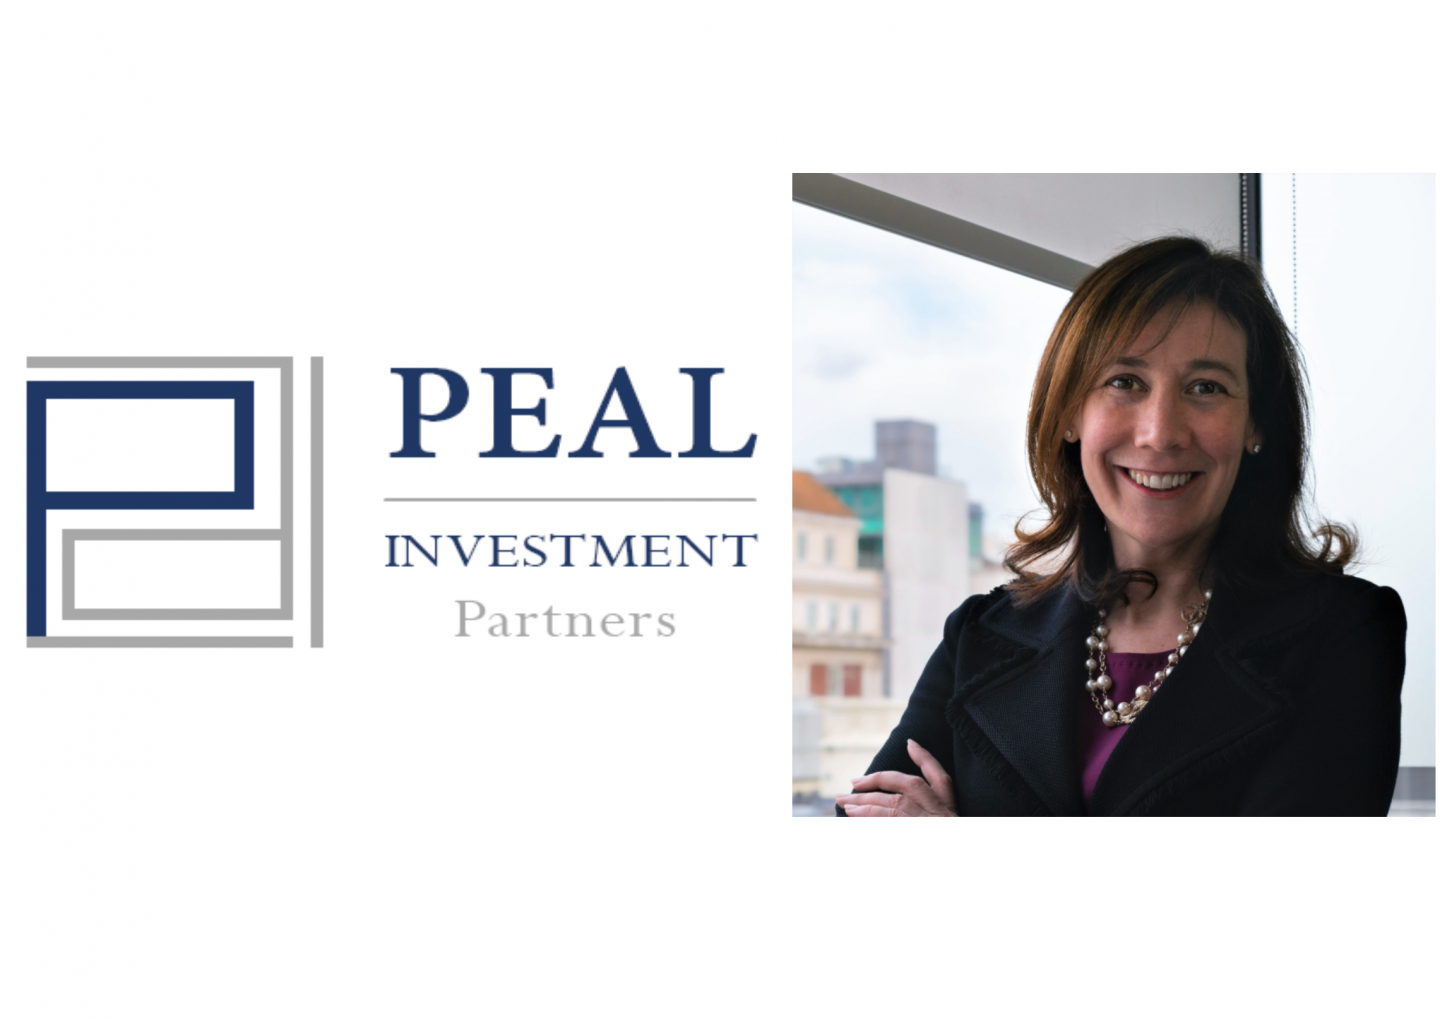 Karen O'Mahony MD at PEAL Investment Partners Ltd, an All Female Investment Team